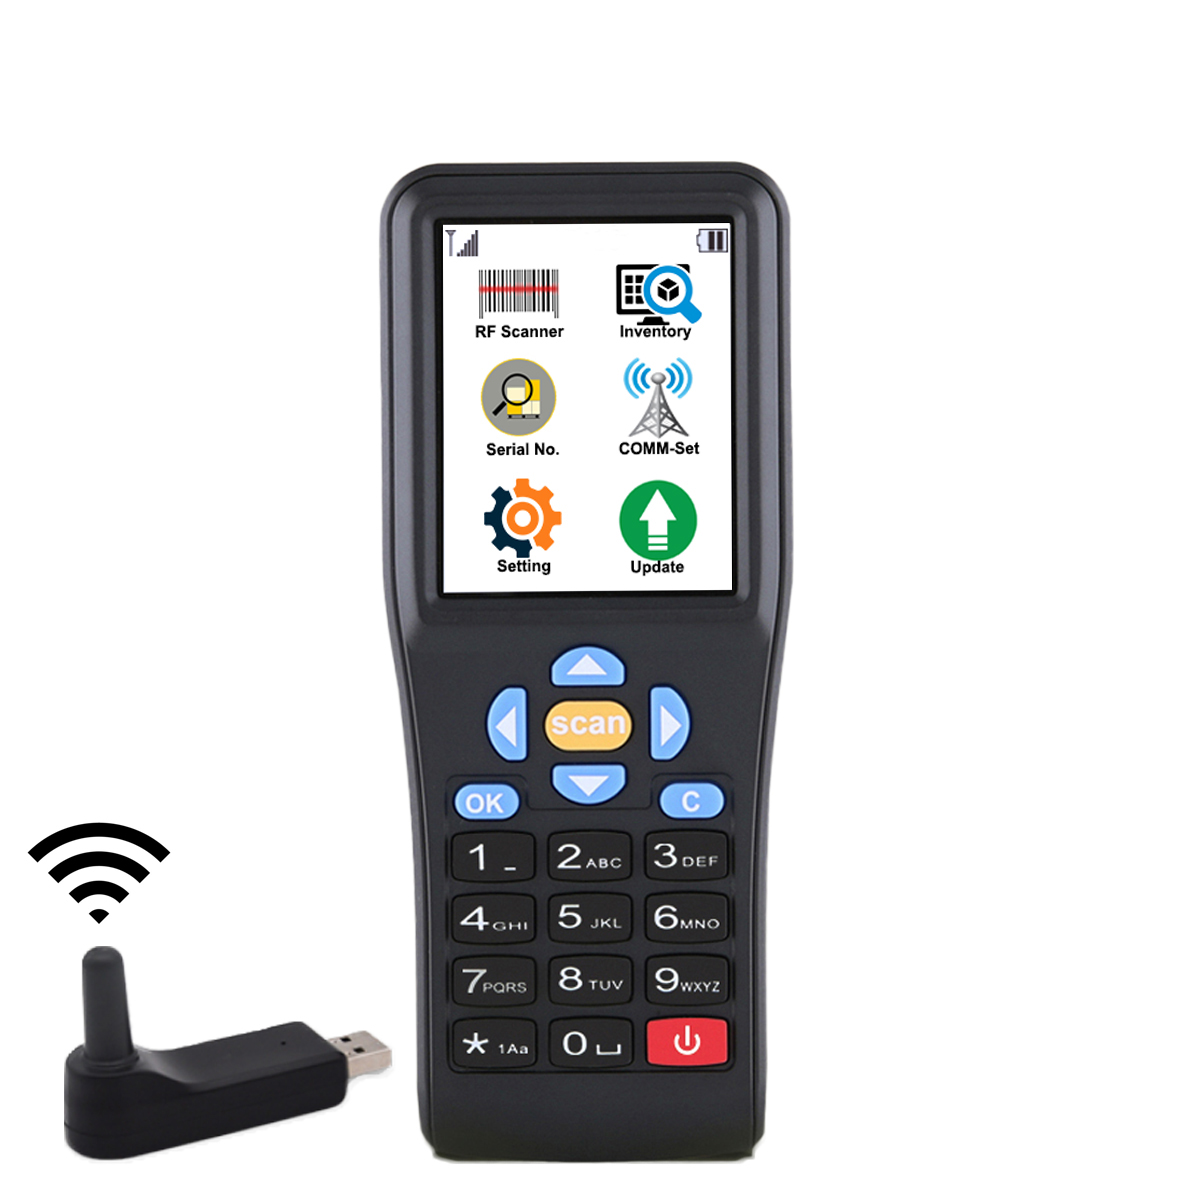 HC-M3 Handheld Data Terminal,Barcodes Data Collector for Inventory Work Process